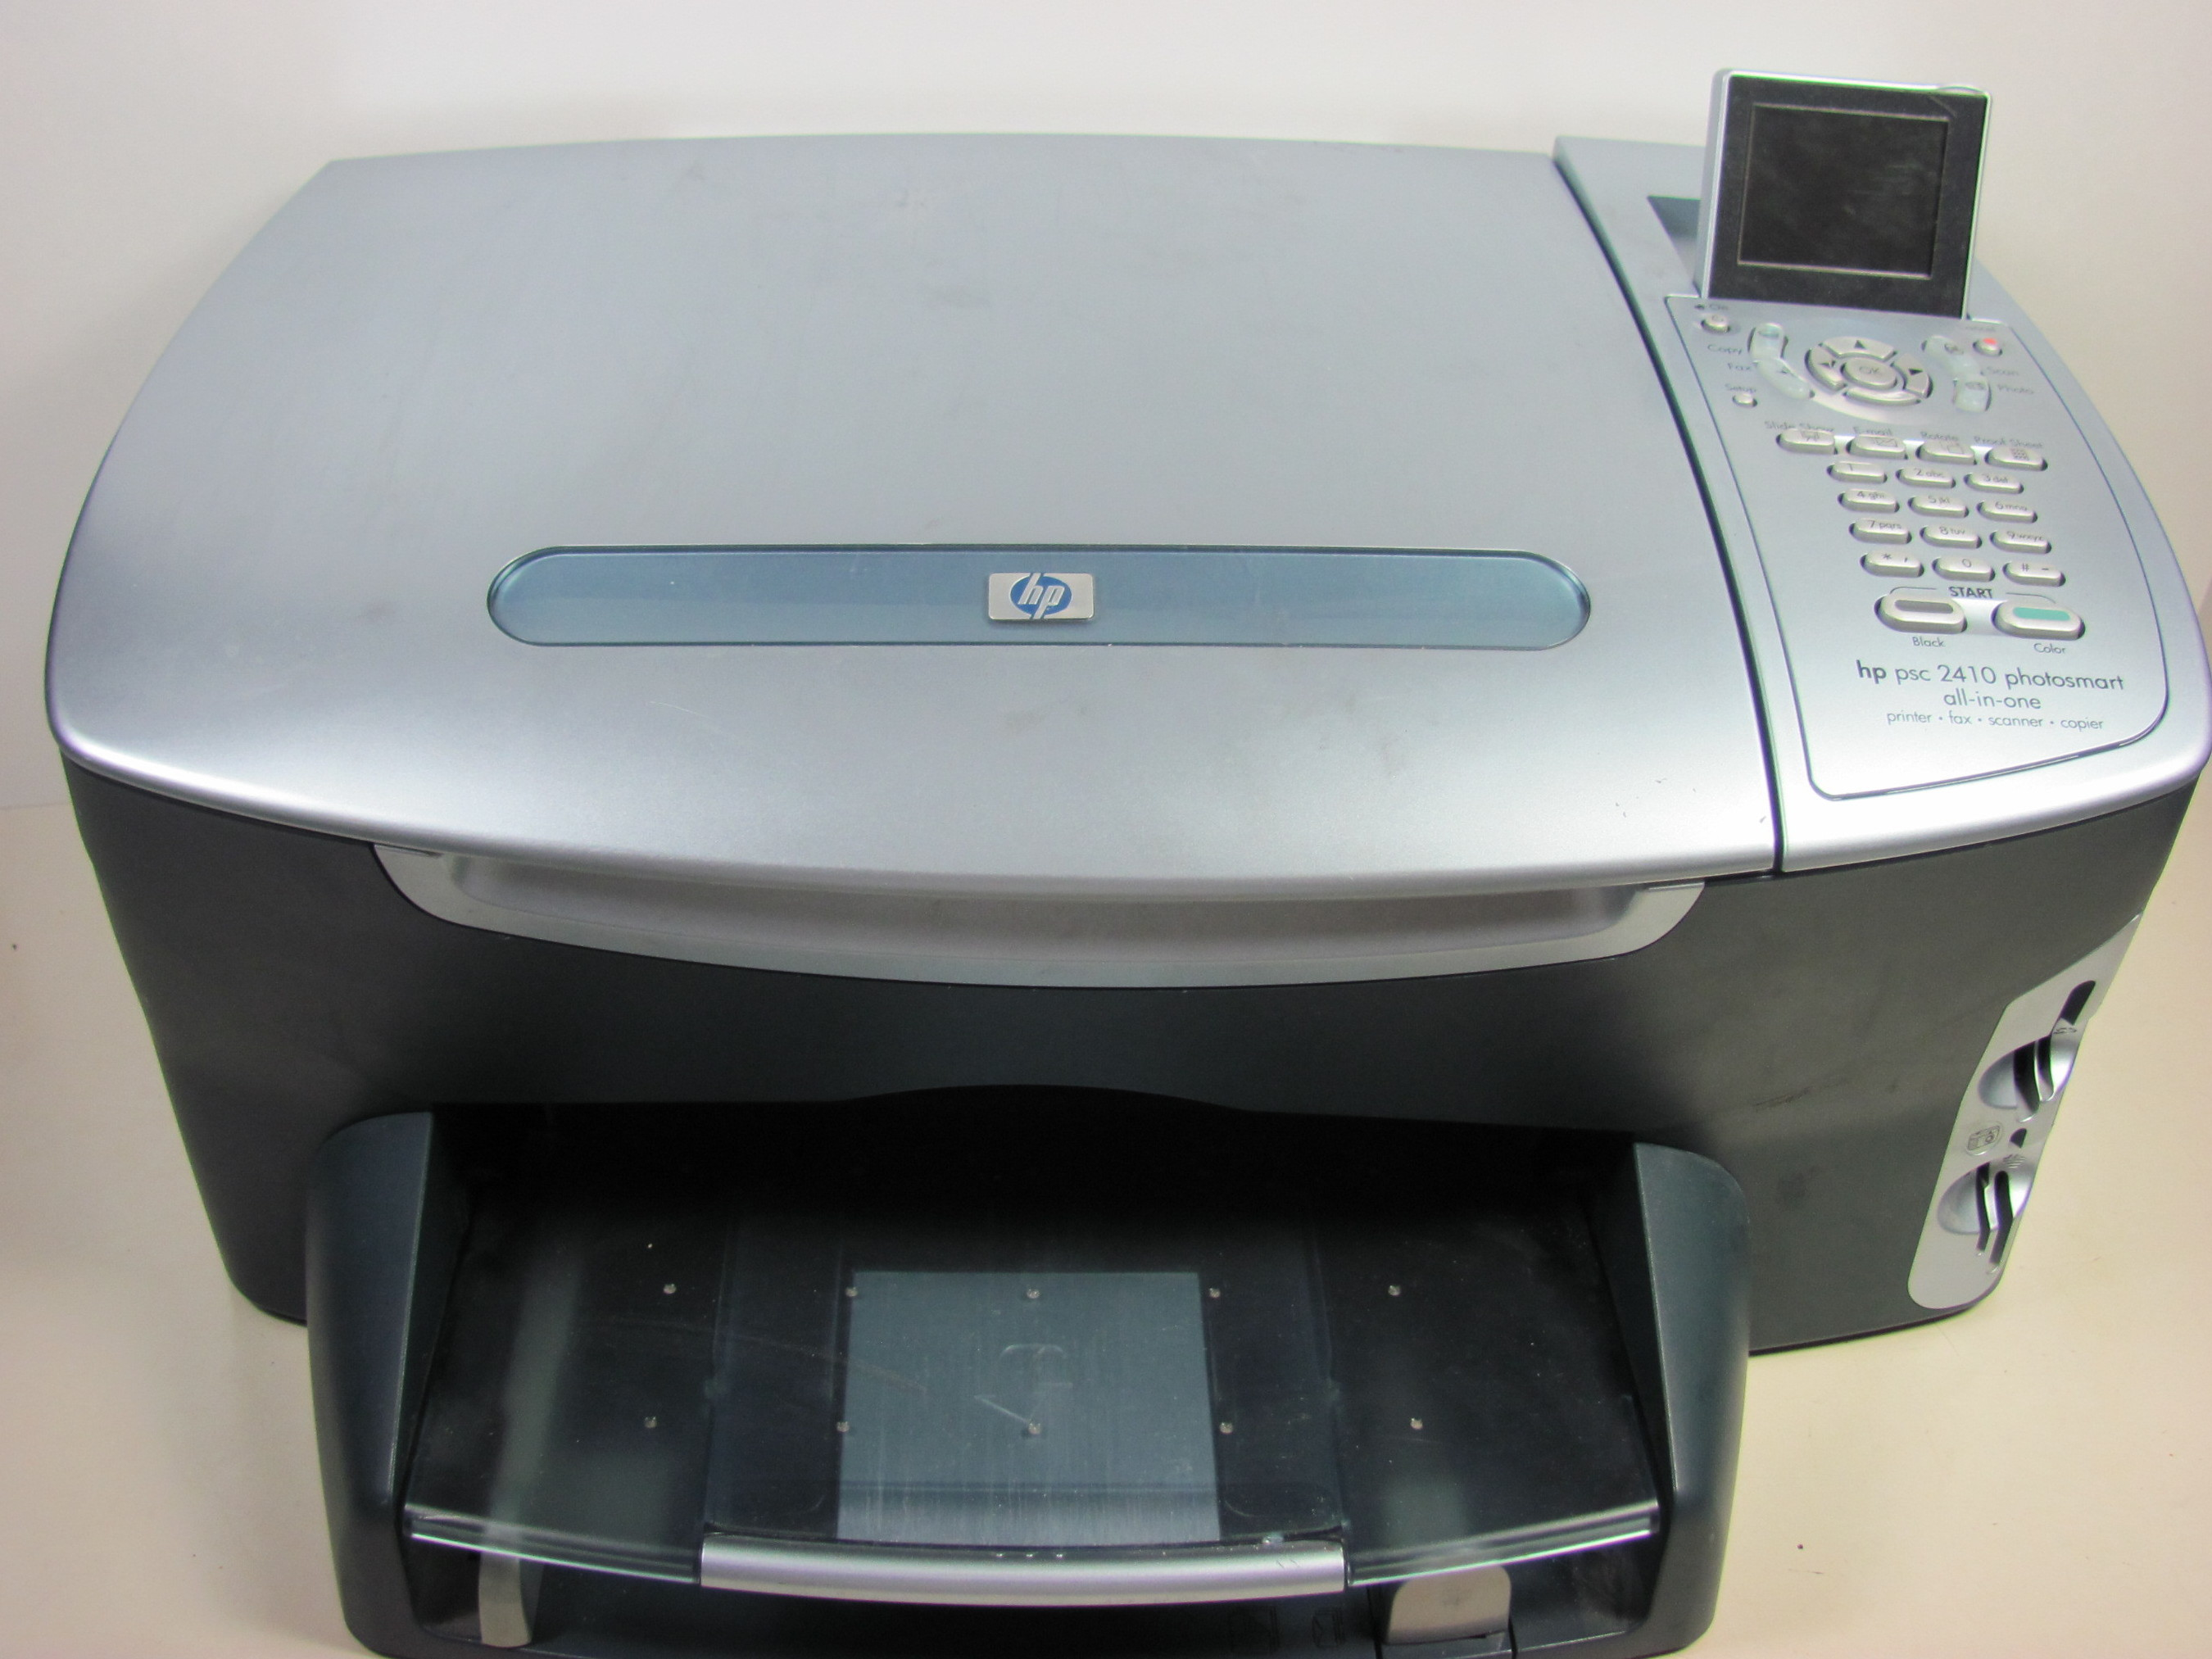 HP PSC 2410V SCANNER WINDOWS 7 X64 TREIBER